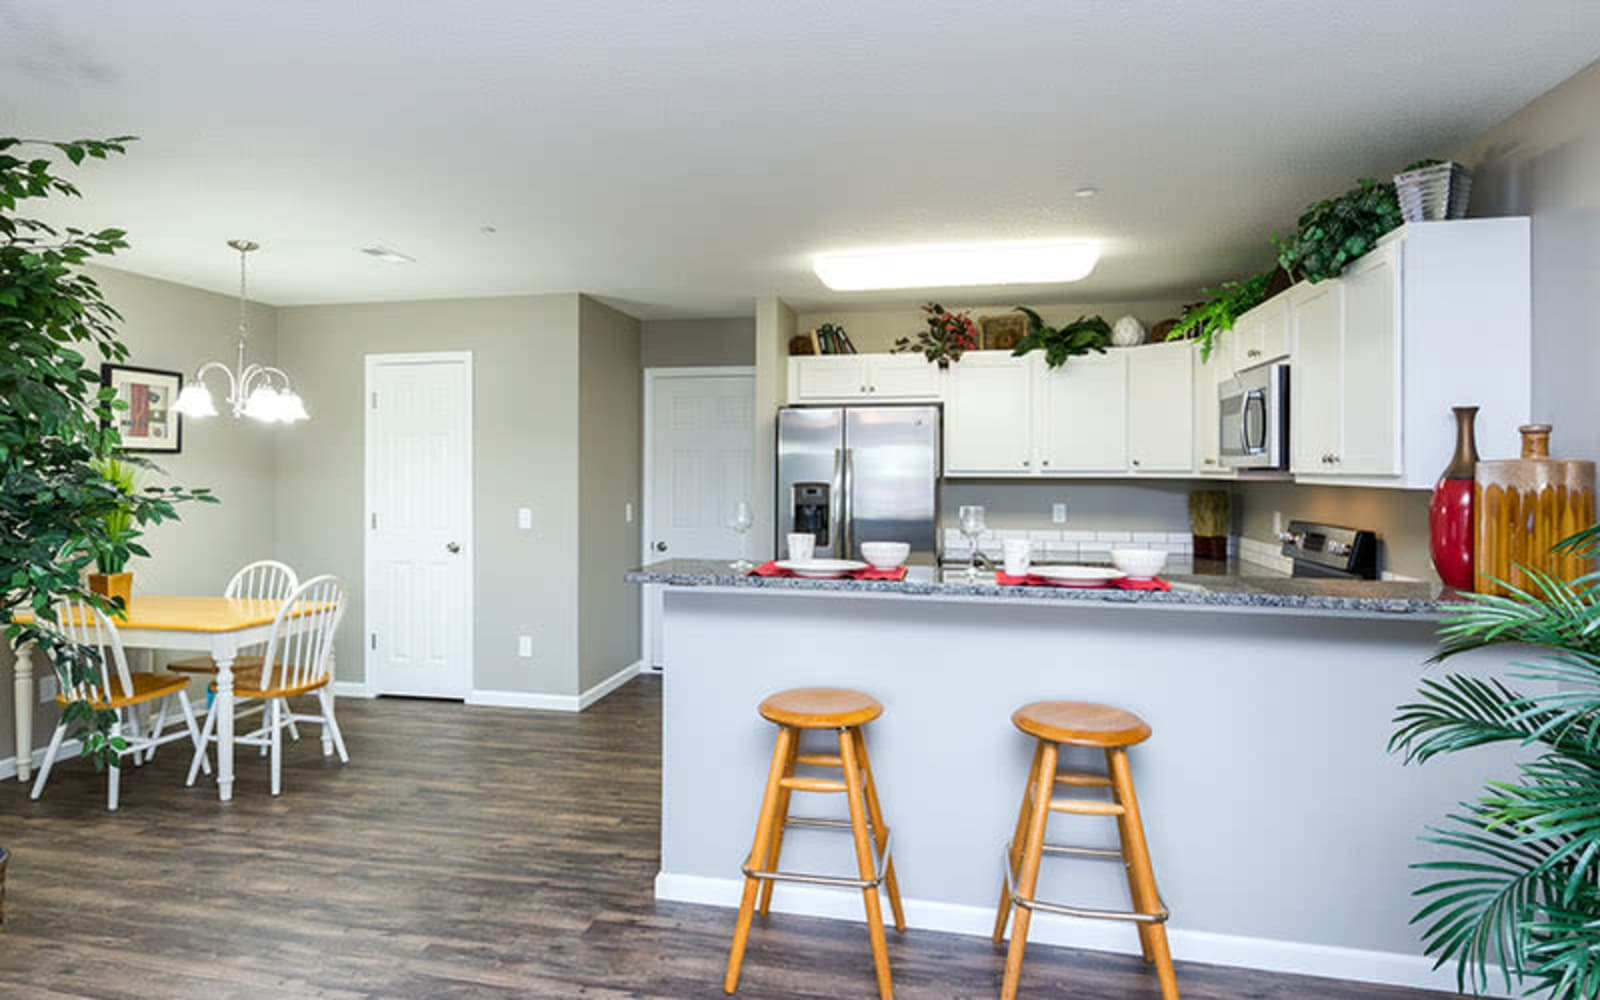 An apartment kitchen and dining room at The Landing of Clinton in Clinton, Iowa